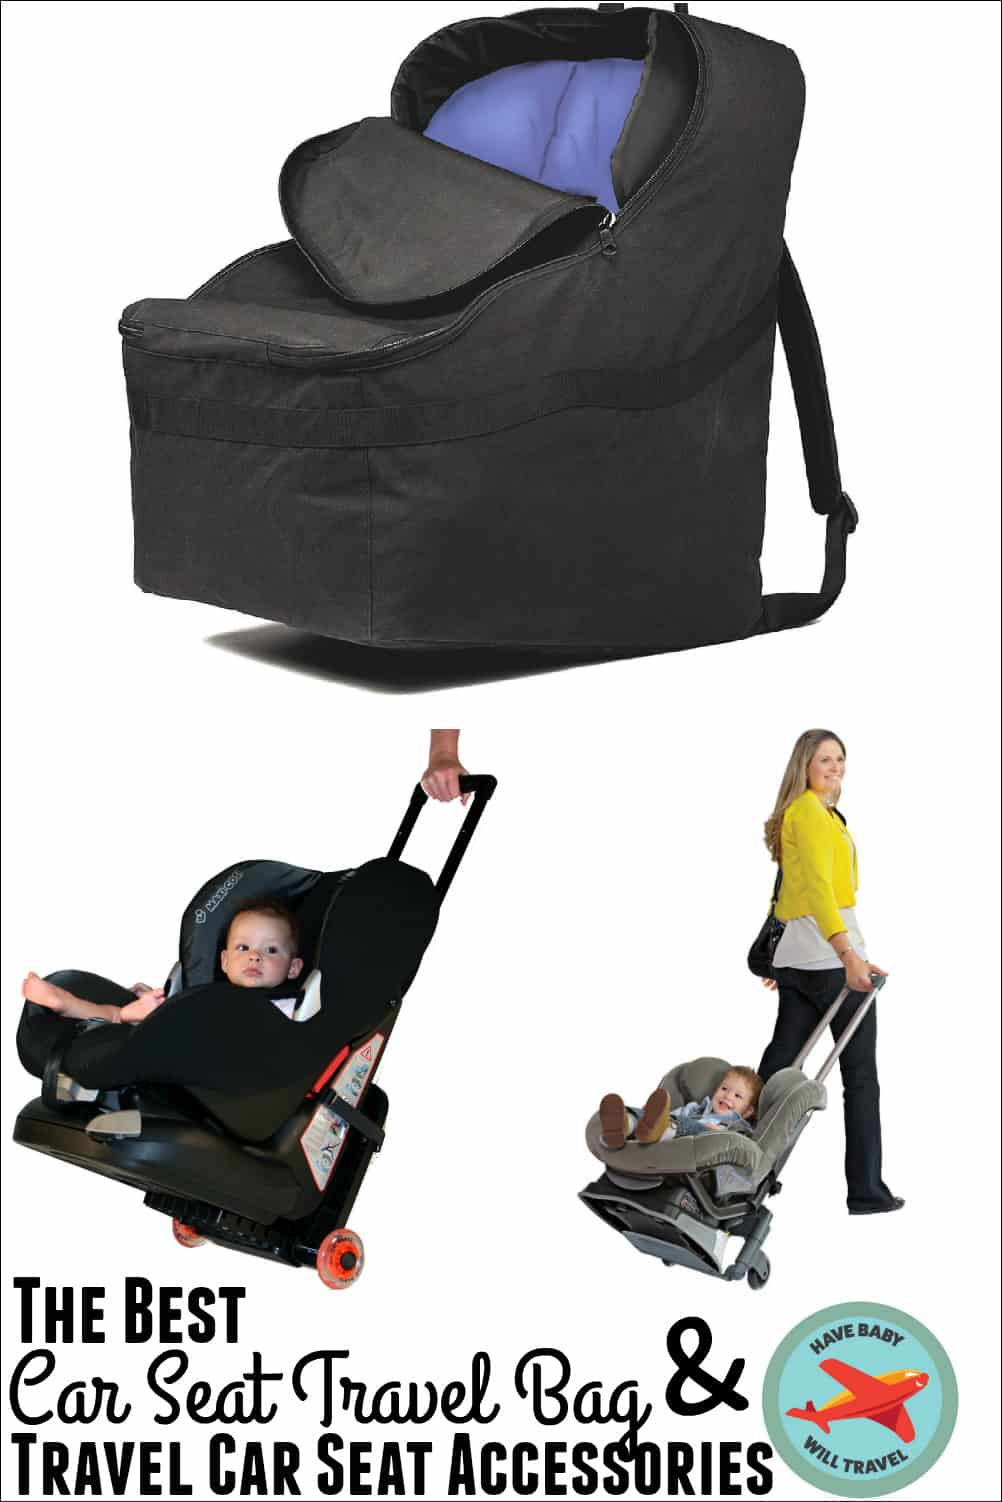 Infant Seat Vs Safety Seat The Best Car Seat Travel Bag Travel Accessories Have